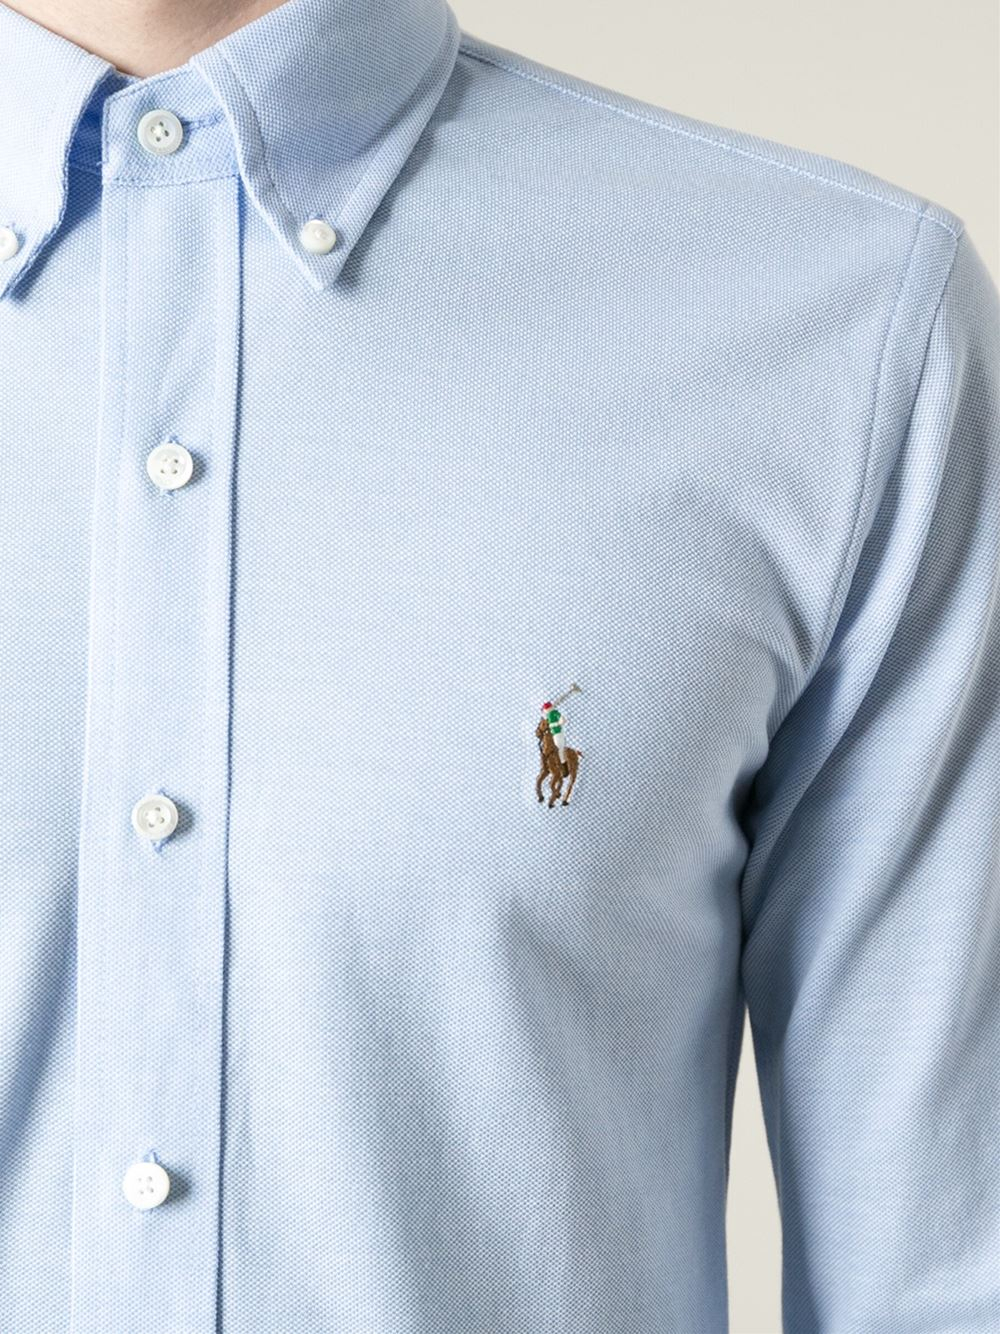 Polo ralph lauren logo embroidered classic shirt in blue